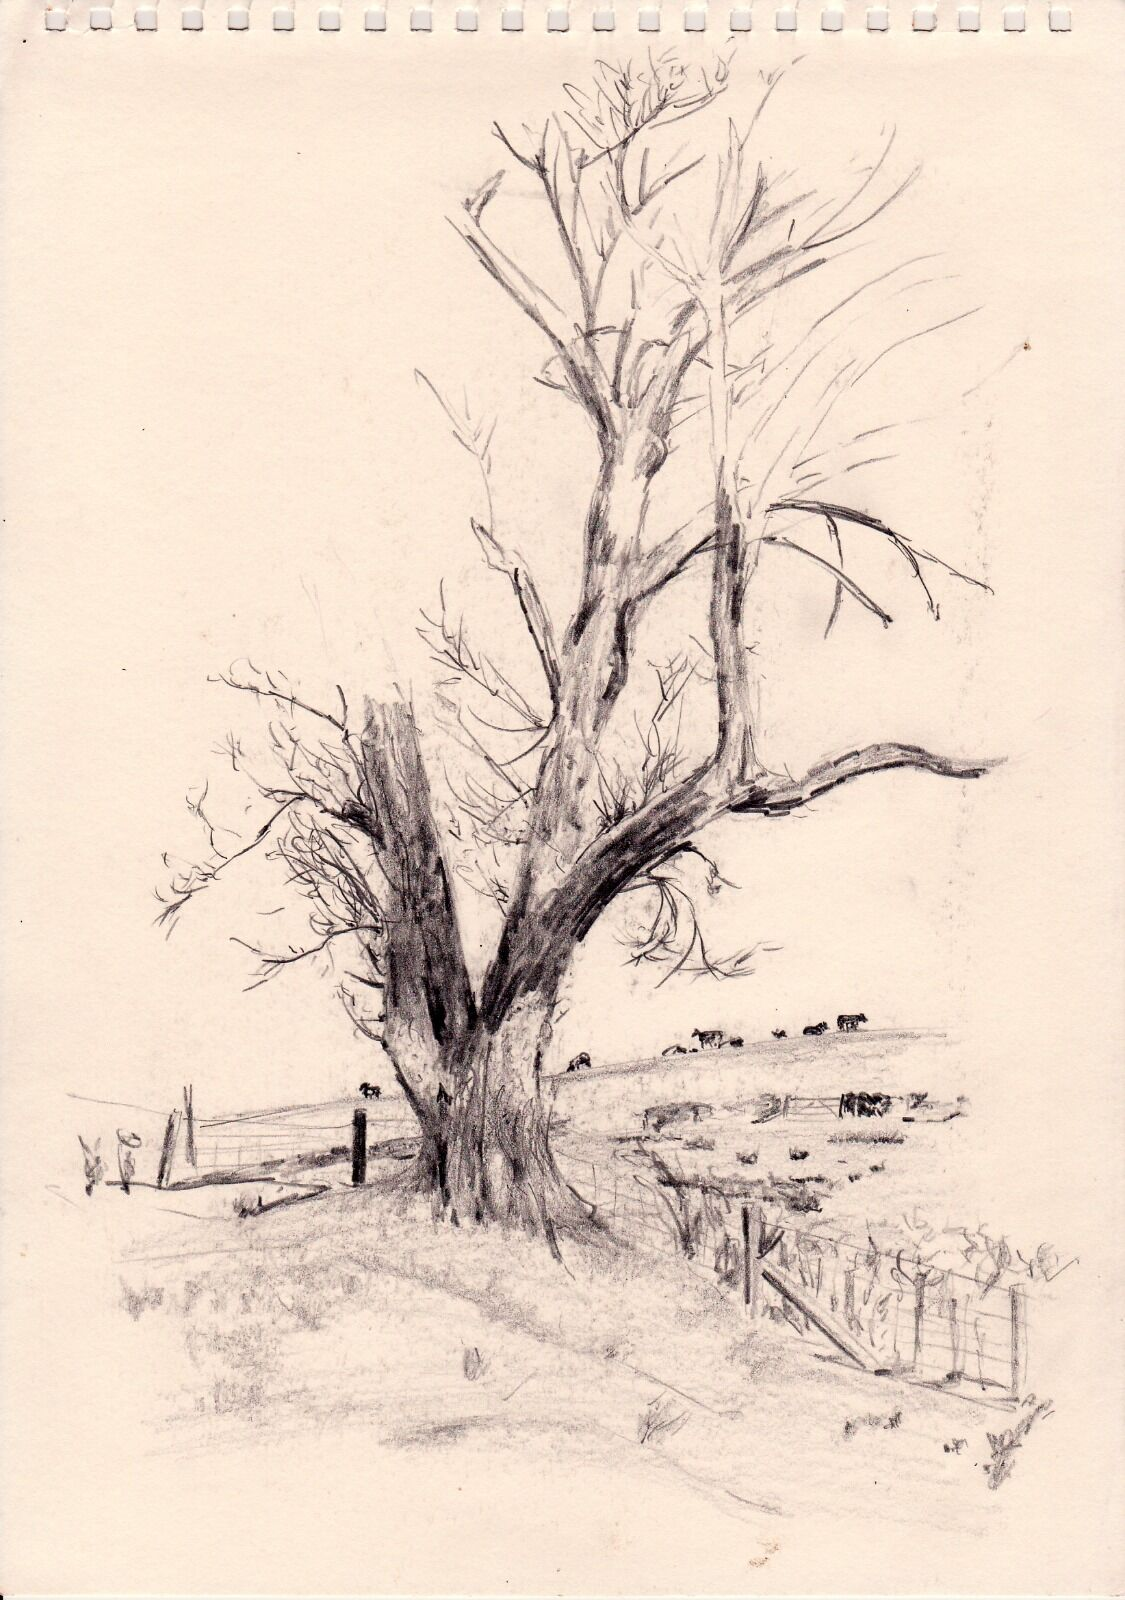 This unfinished sketch of a tree, which I ran out of time to complete, demonstrates how hard is is to capture the complex patterns in the things we take for granted around us.